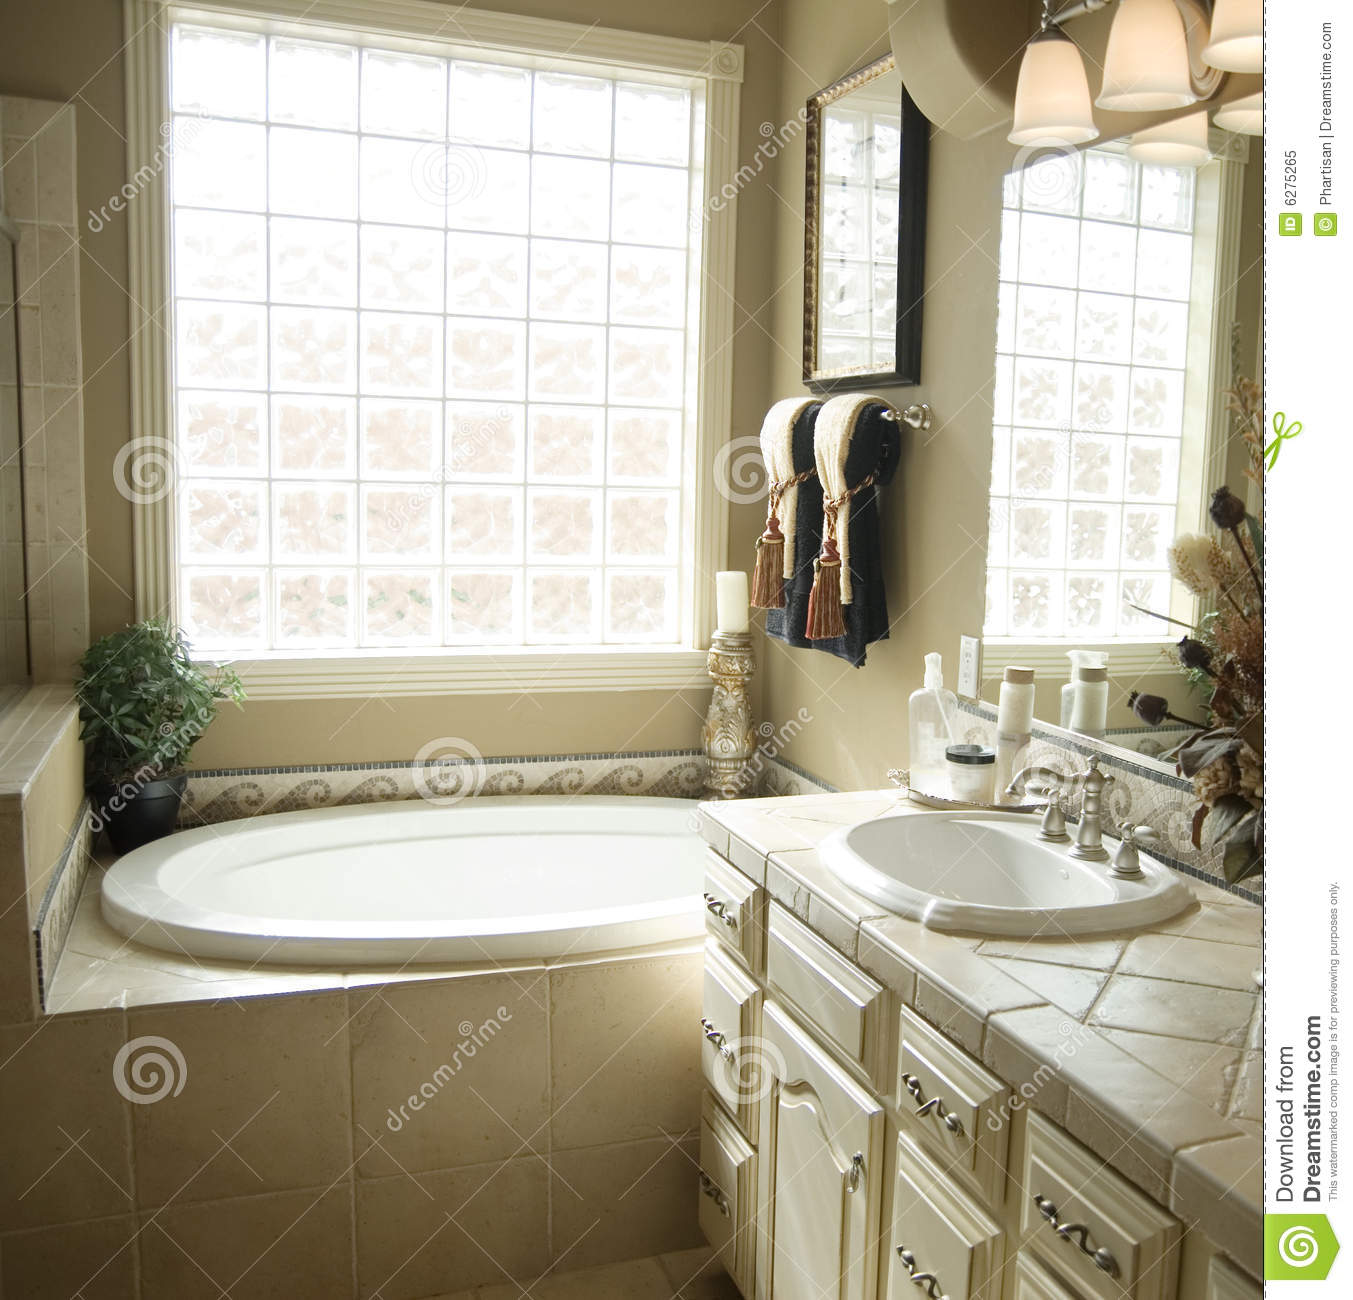 Beautiful Bathroom Design Pictures : Beautiful bathroom interior design royalty free stock photo image